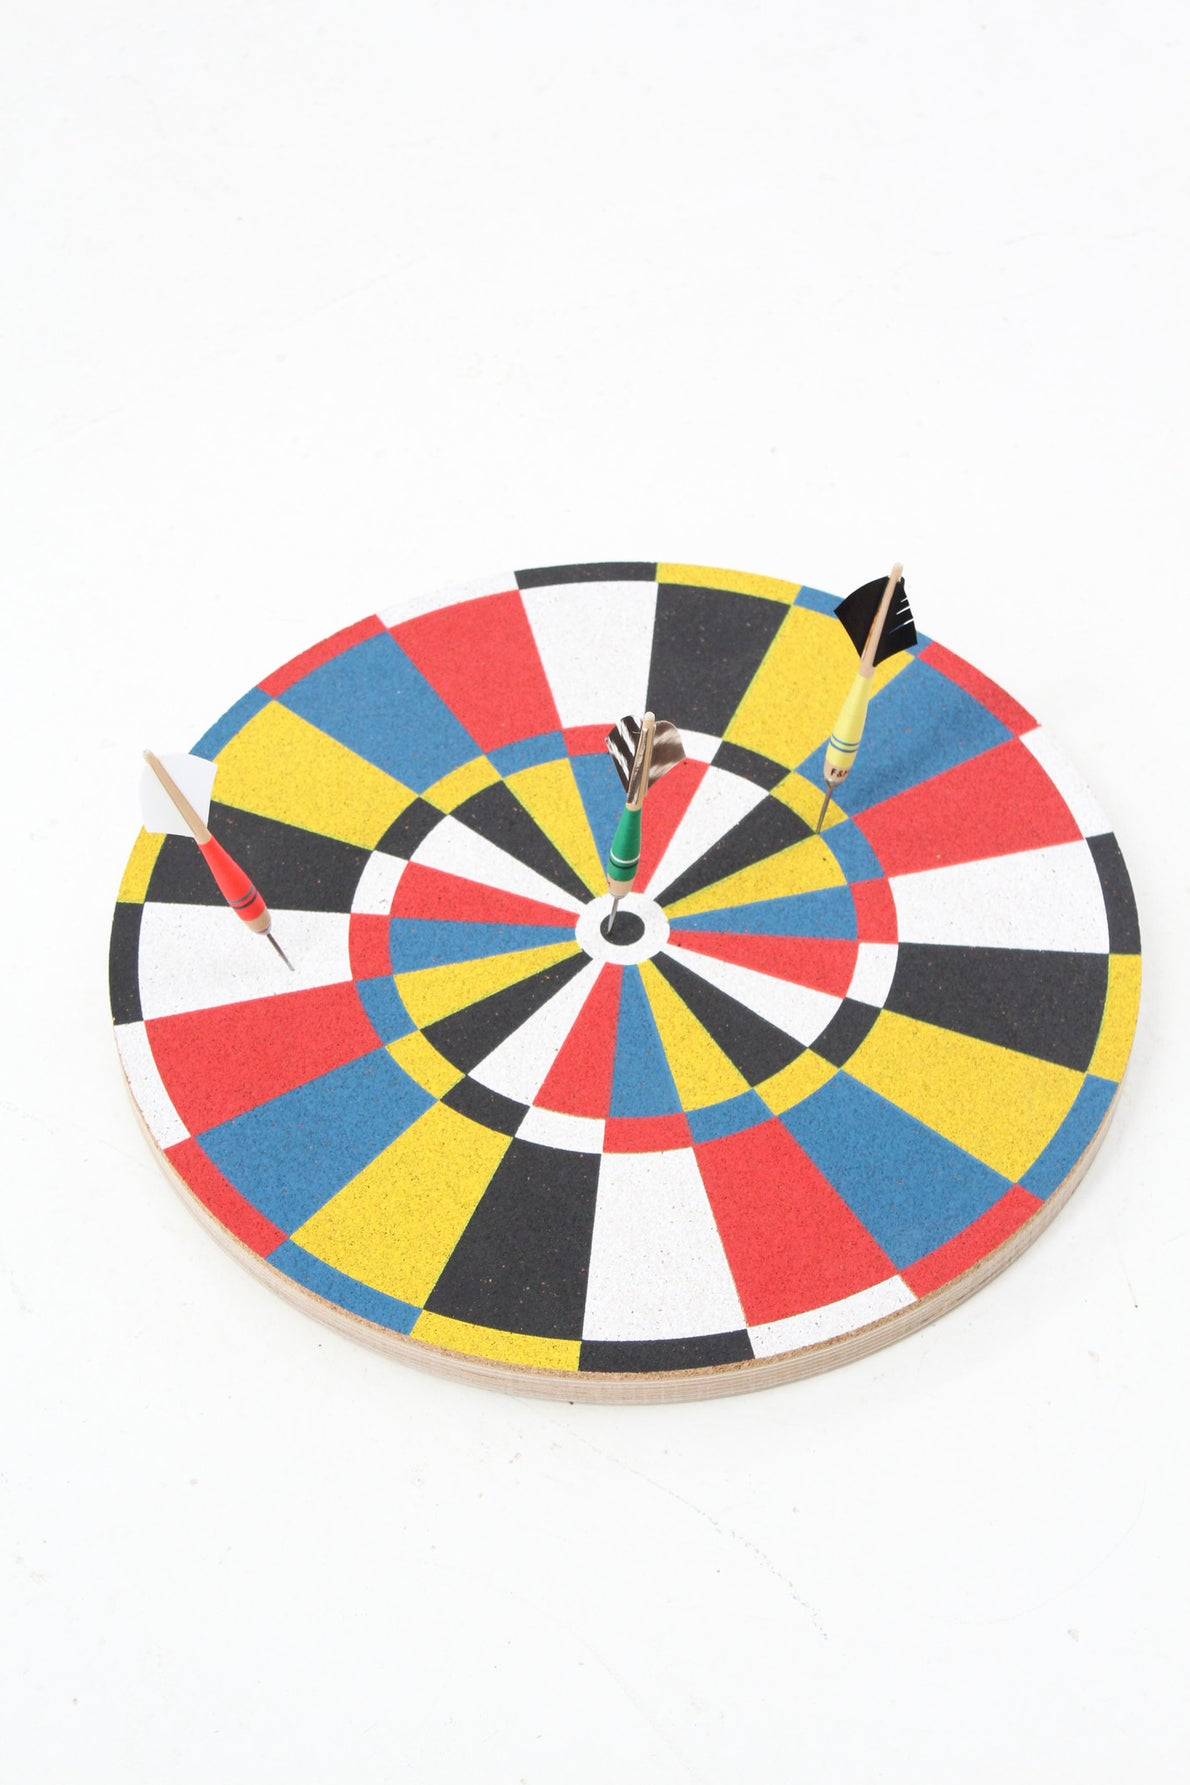 Dartboard & Darts Handmade In NYC